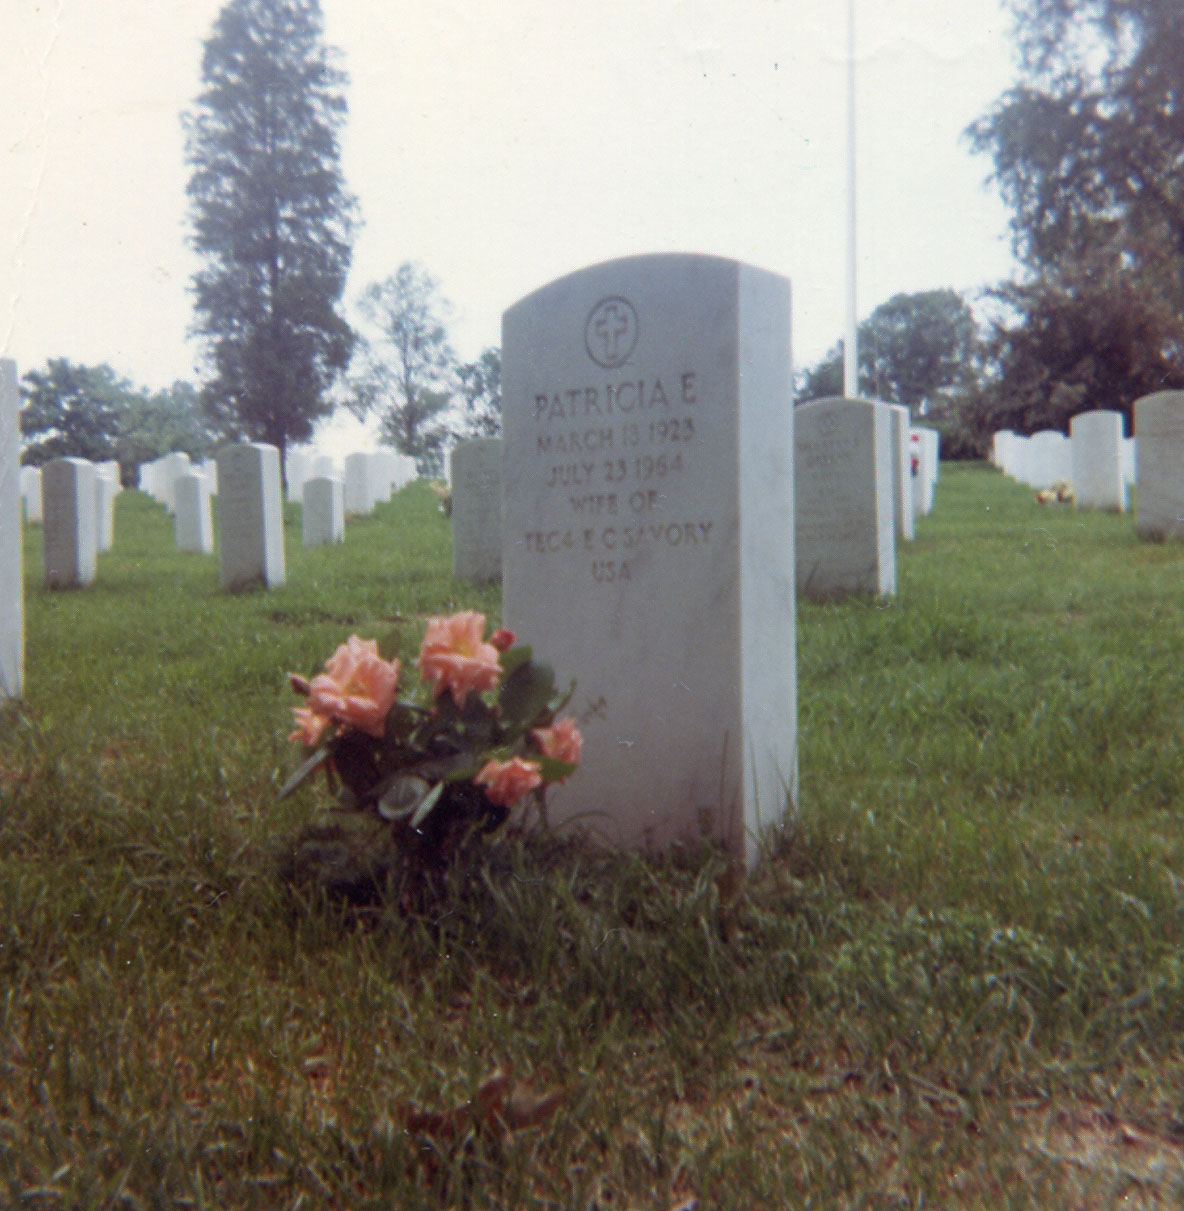 Headstone of Patricia Eileen Savory (nee Geake) - photographed in 1968